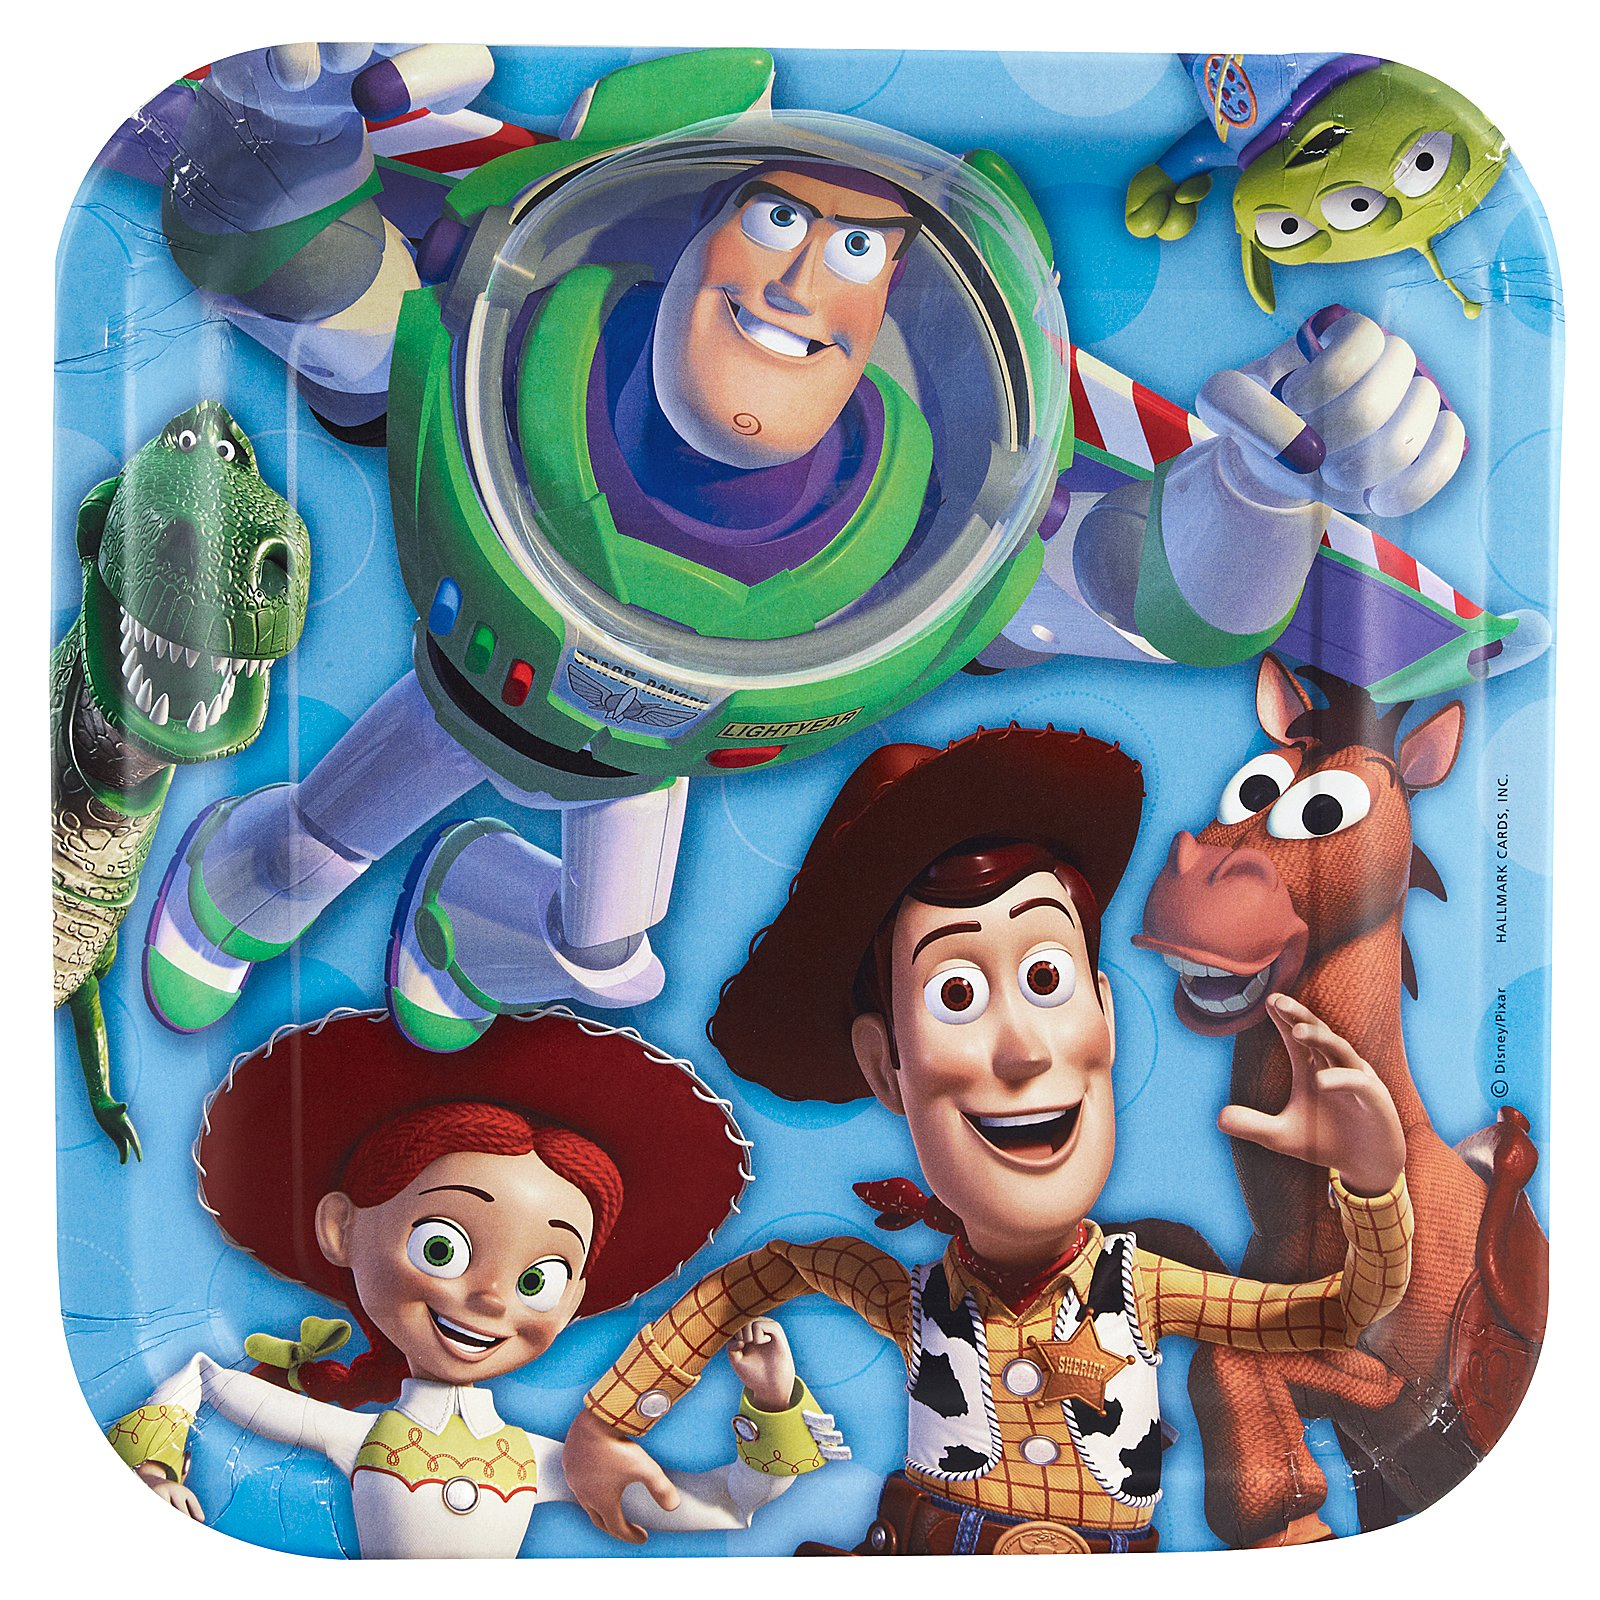 Toy Story 3 - 3D Dinner Plates (8 count)